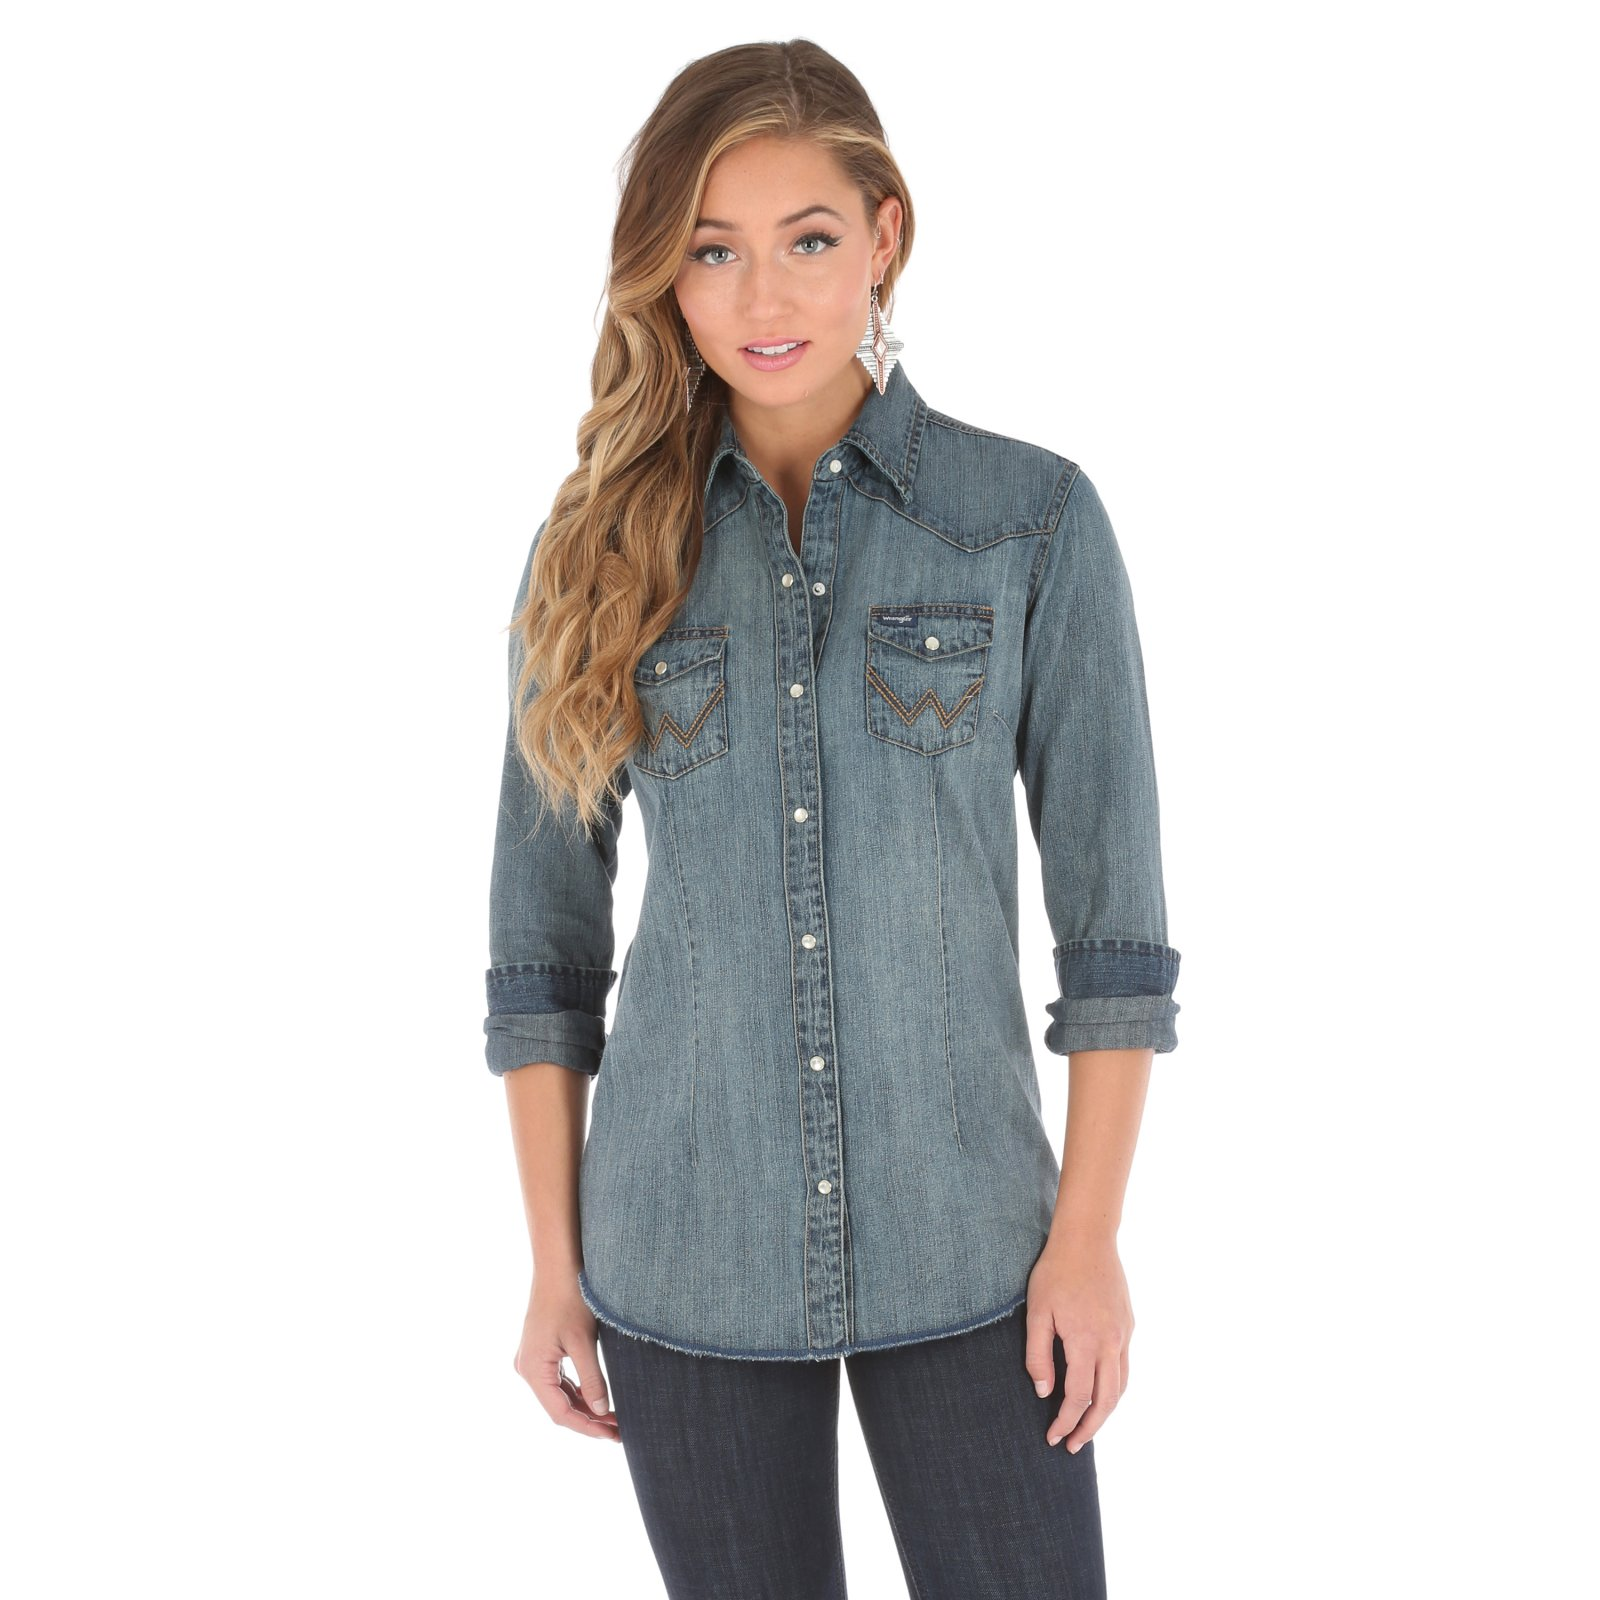 Women's Long Sleeve Denim Shirt from Wrangler